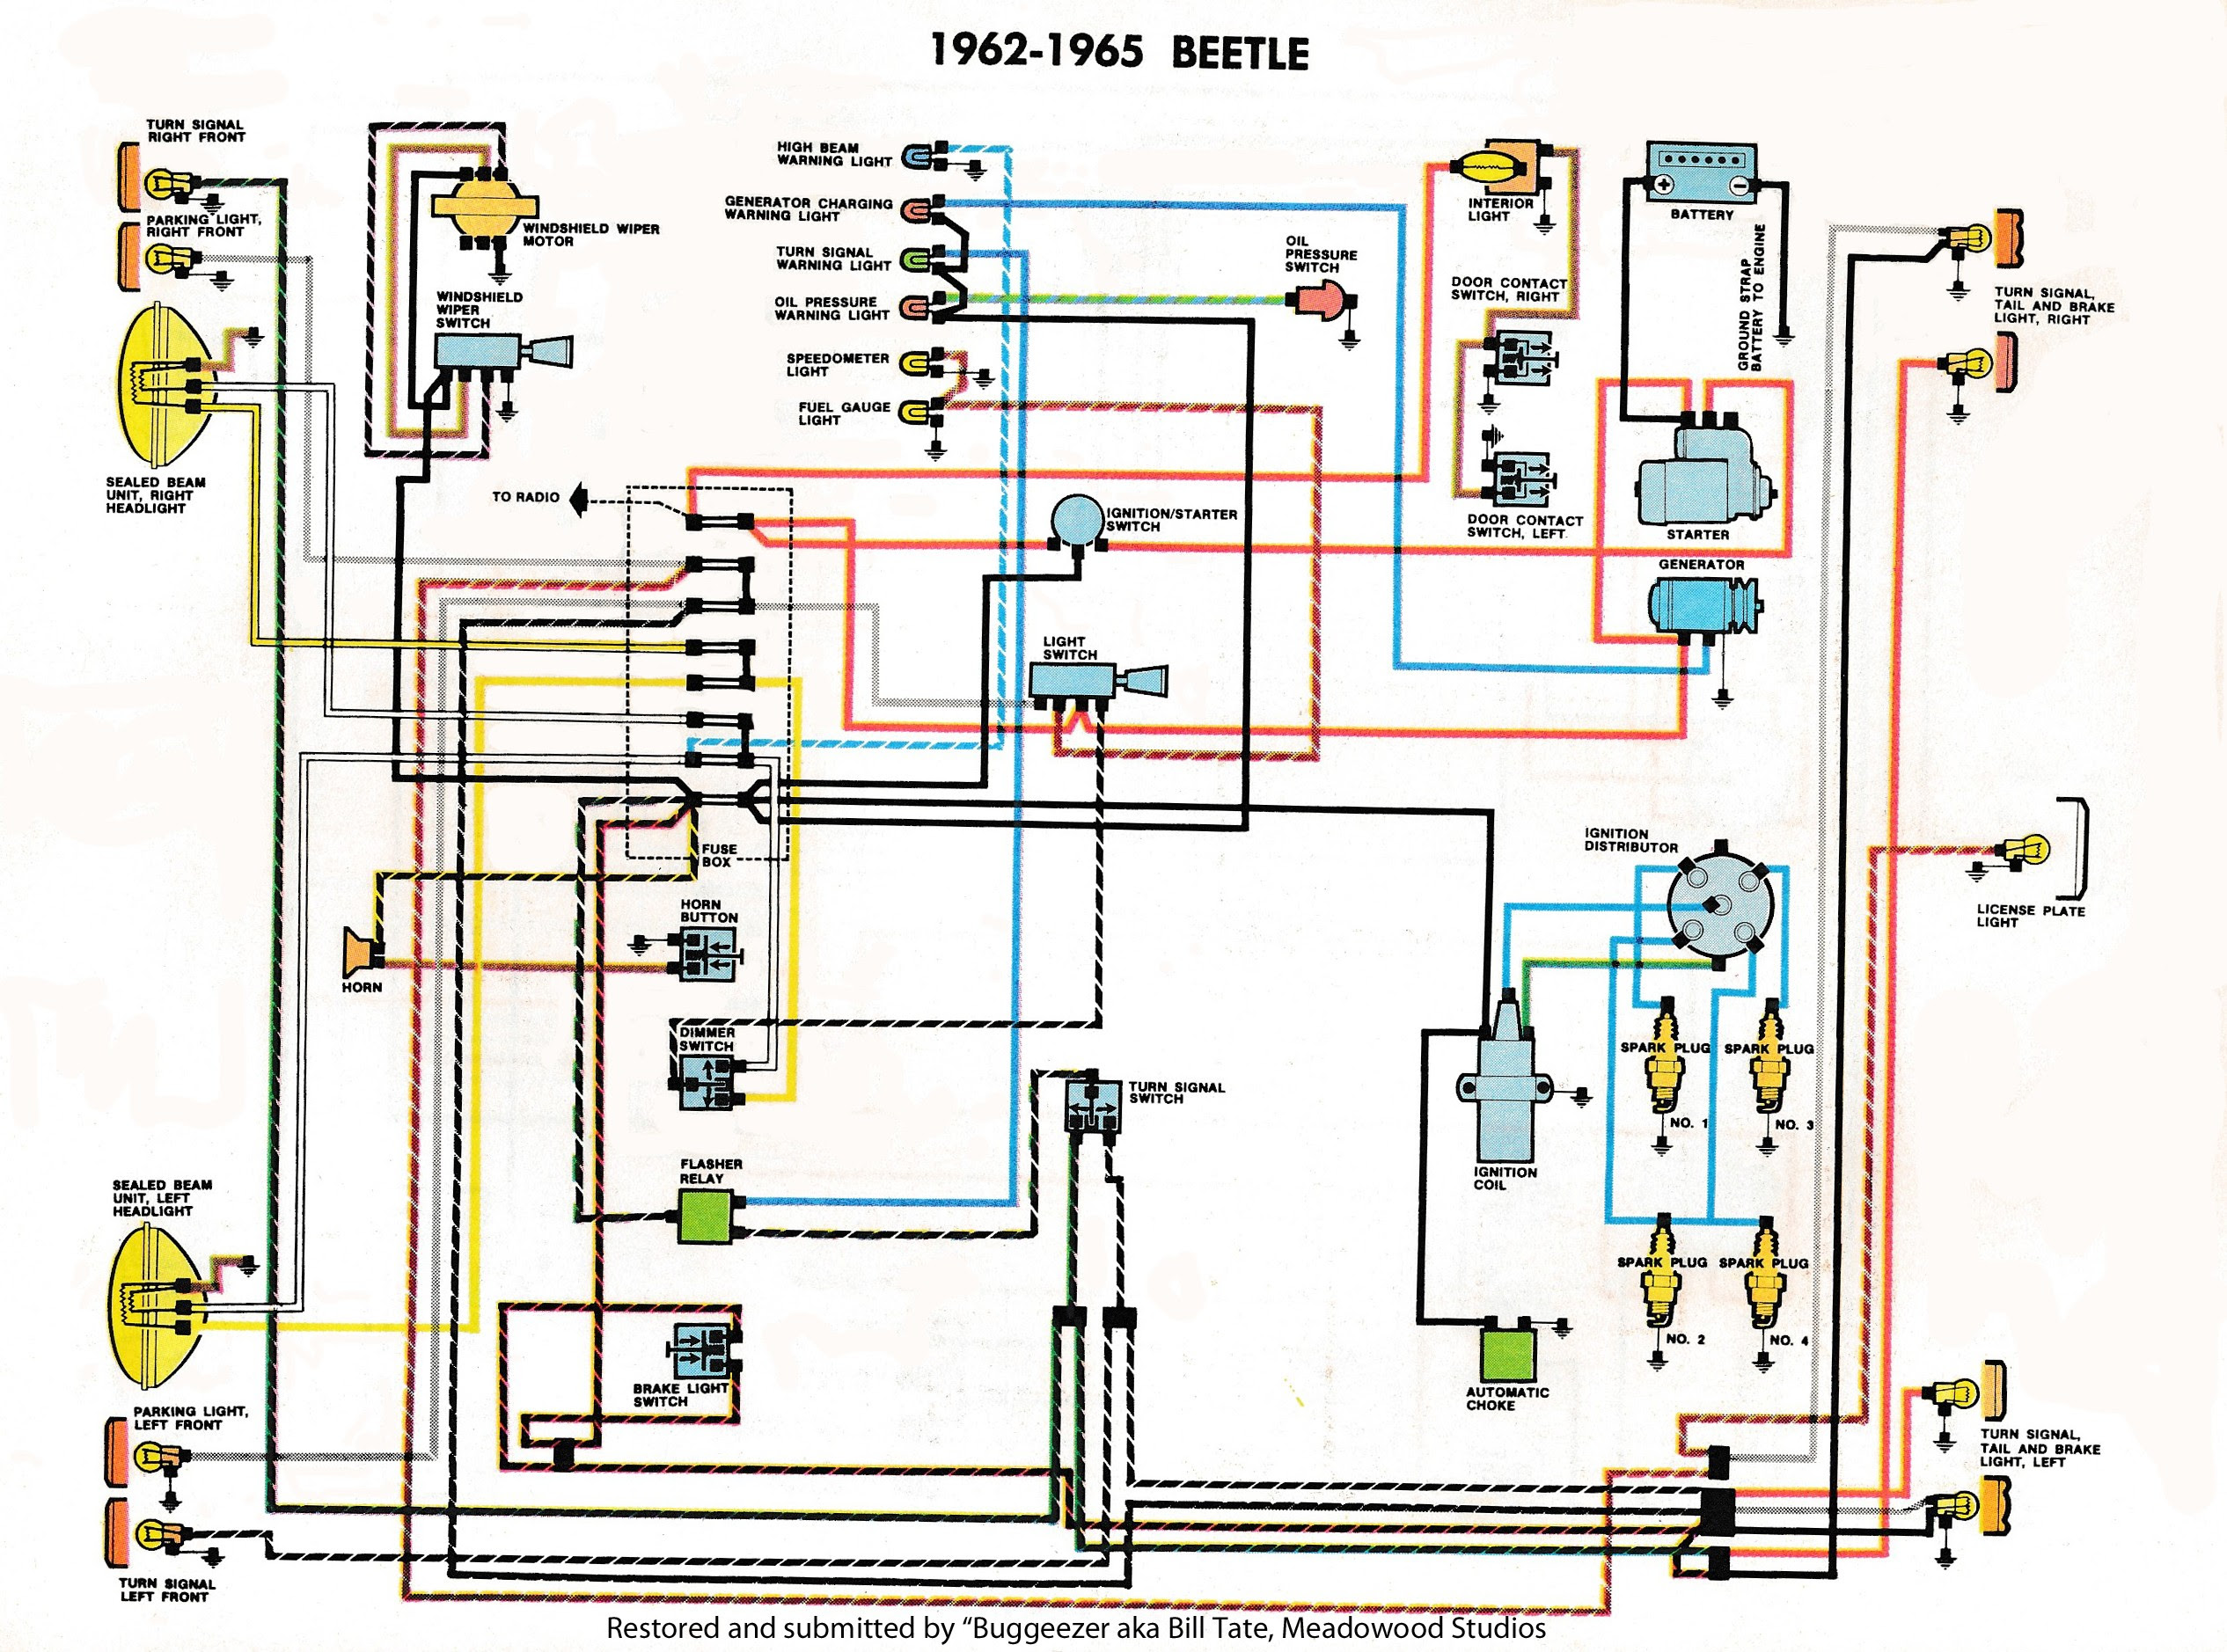 1970 Vw Beetle Turn Signal Wiring Diagram - Center Wiring Diagram  editor-manual - editor-manual.iosonointersex.itiosonointersex.it